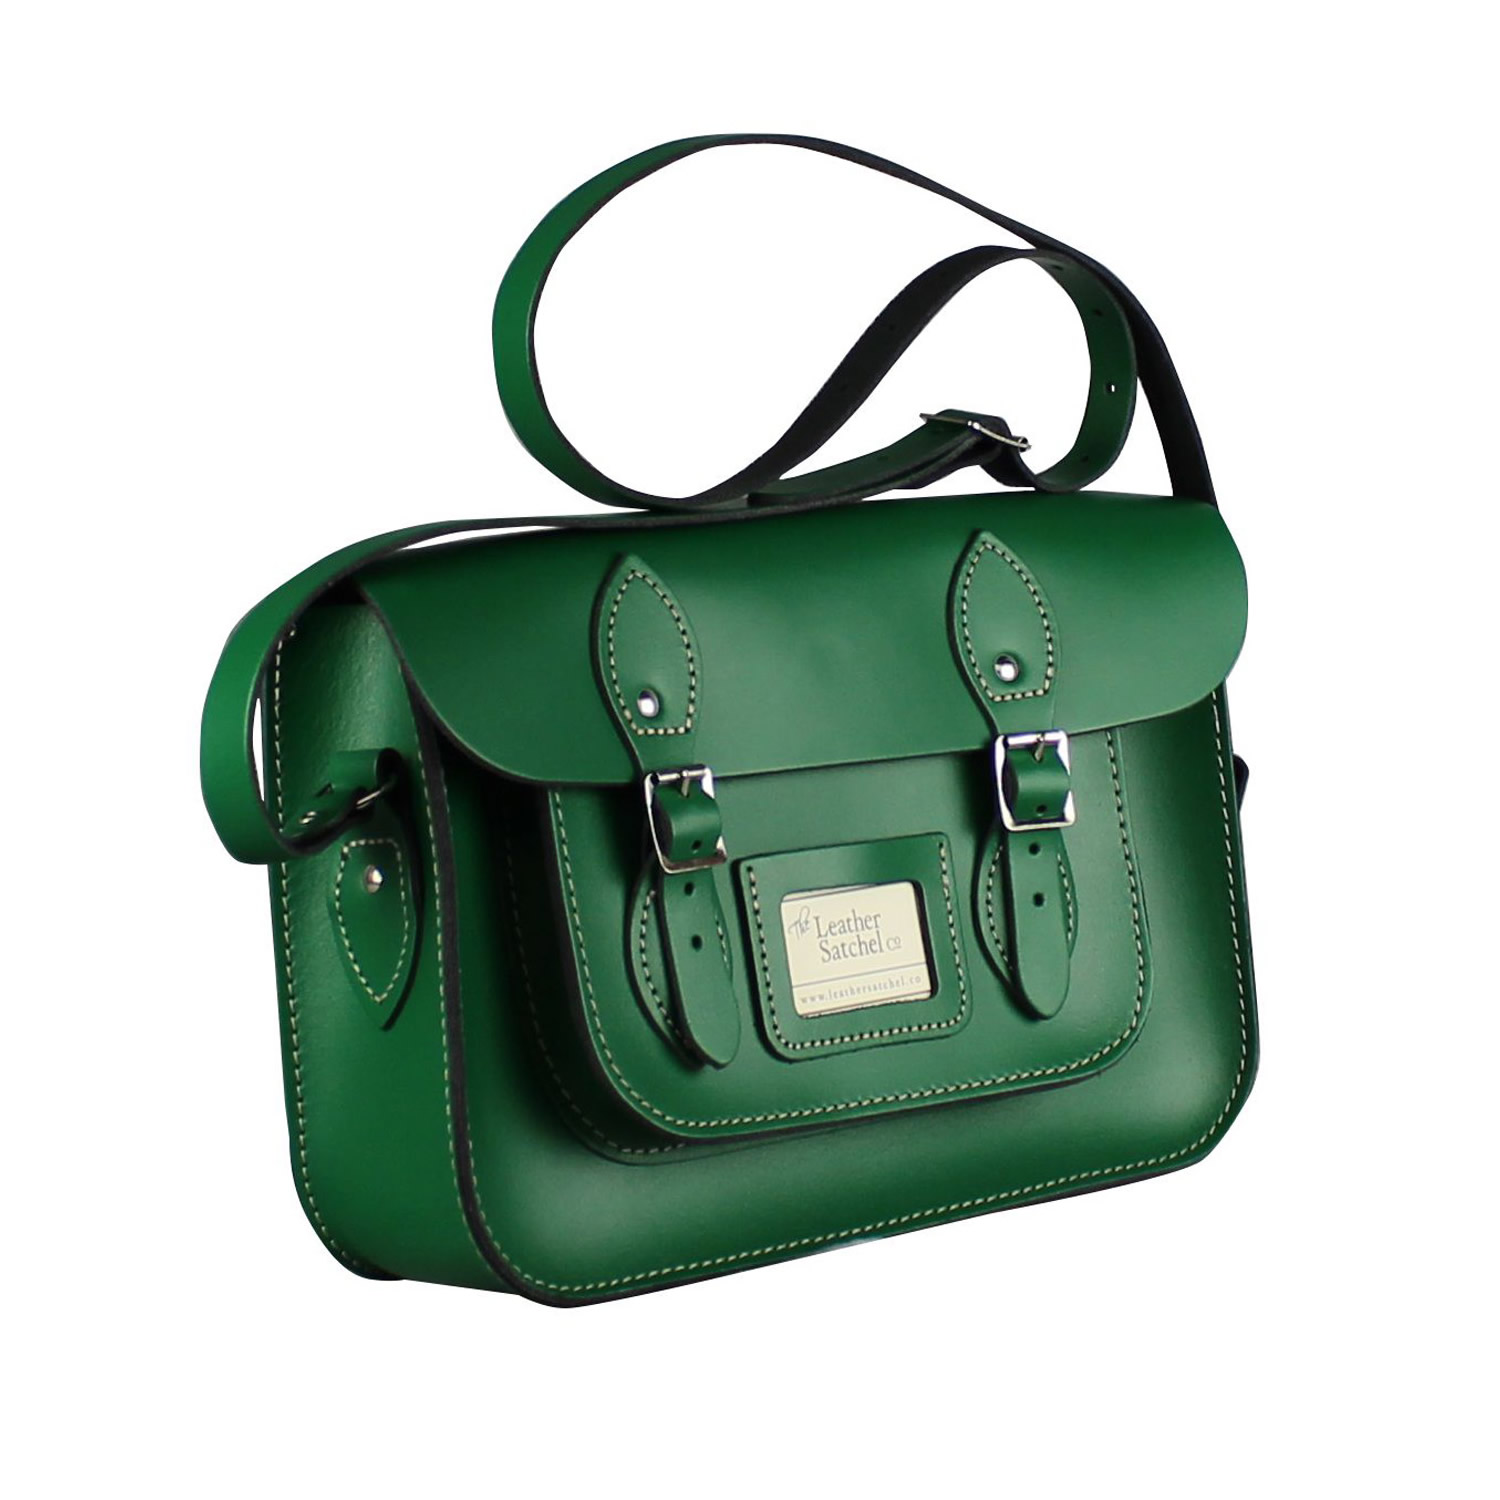 Classic Snow White Leather Satchel 12.5 inch | The Leather Satchel Co.